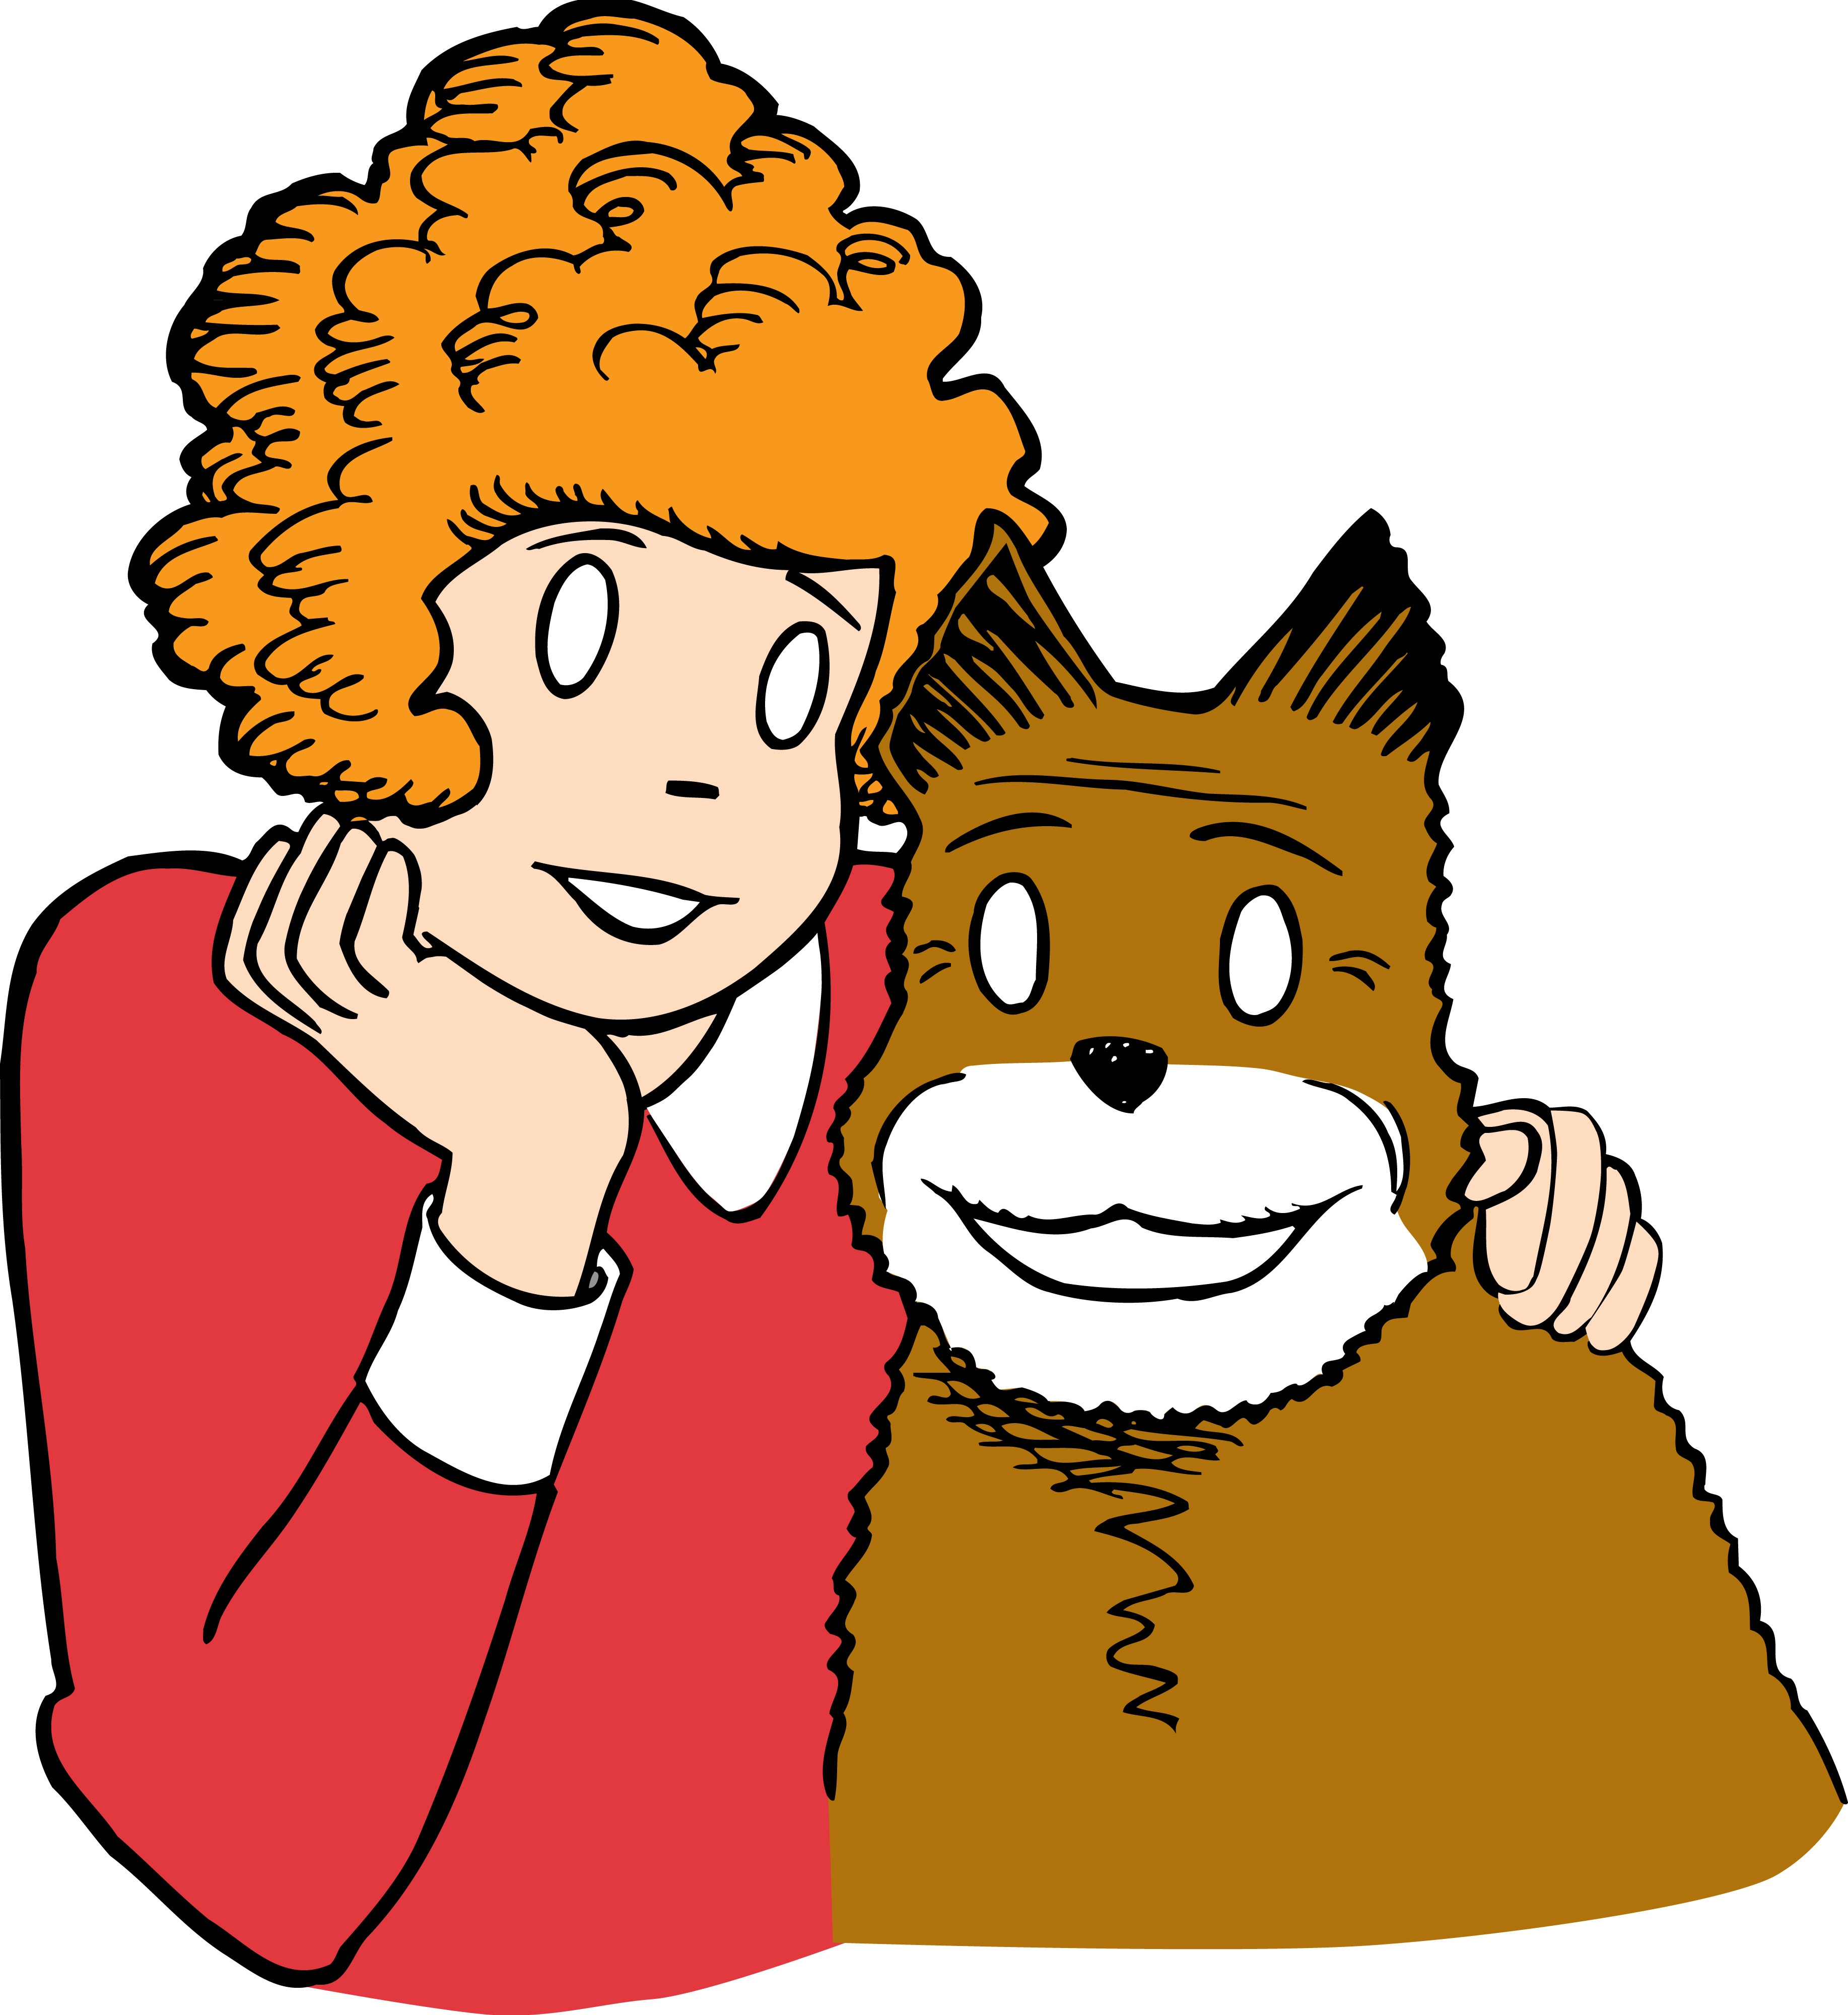 Annie and daddy warbucks clipart clip art freeuse stock Little Orphan Annie ... Farewell   The Spokesman-Review clip art freeuse stock